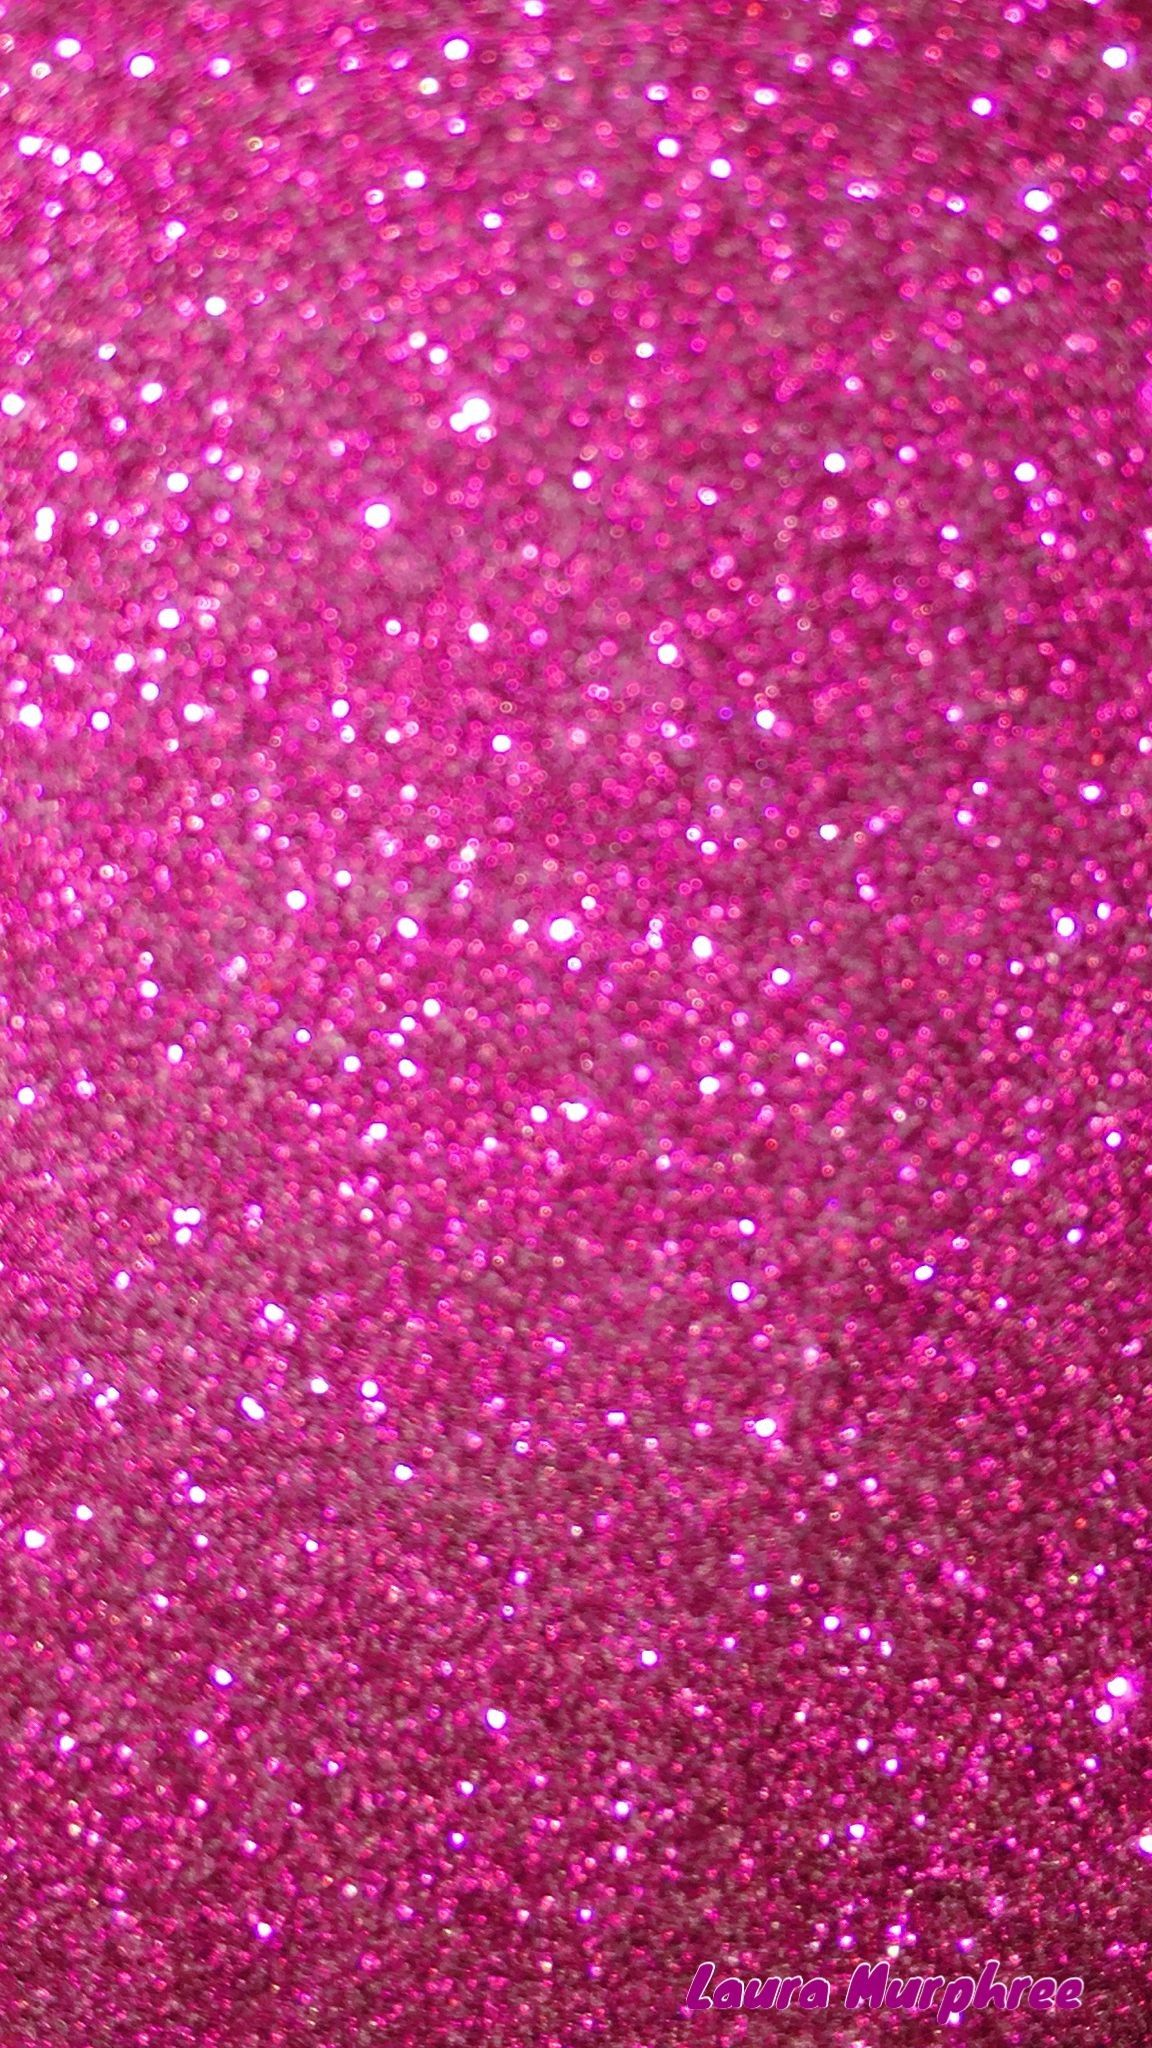 Pink Glitter Wallpapers Top Free Pink Glitter Backgrounds Wallpaperaccess Check out inspiring examples of pink_glitter_background artwork on deviantart, and get inspired by our community of talented artists. pink glitter wallpapers top free pink